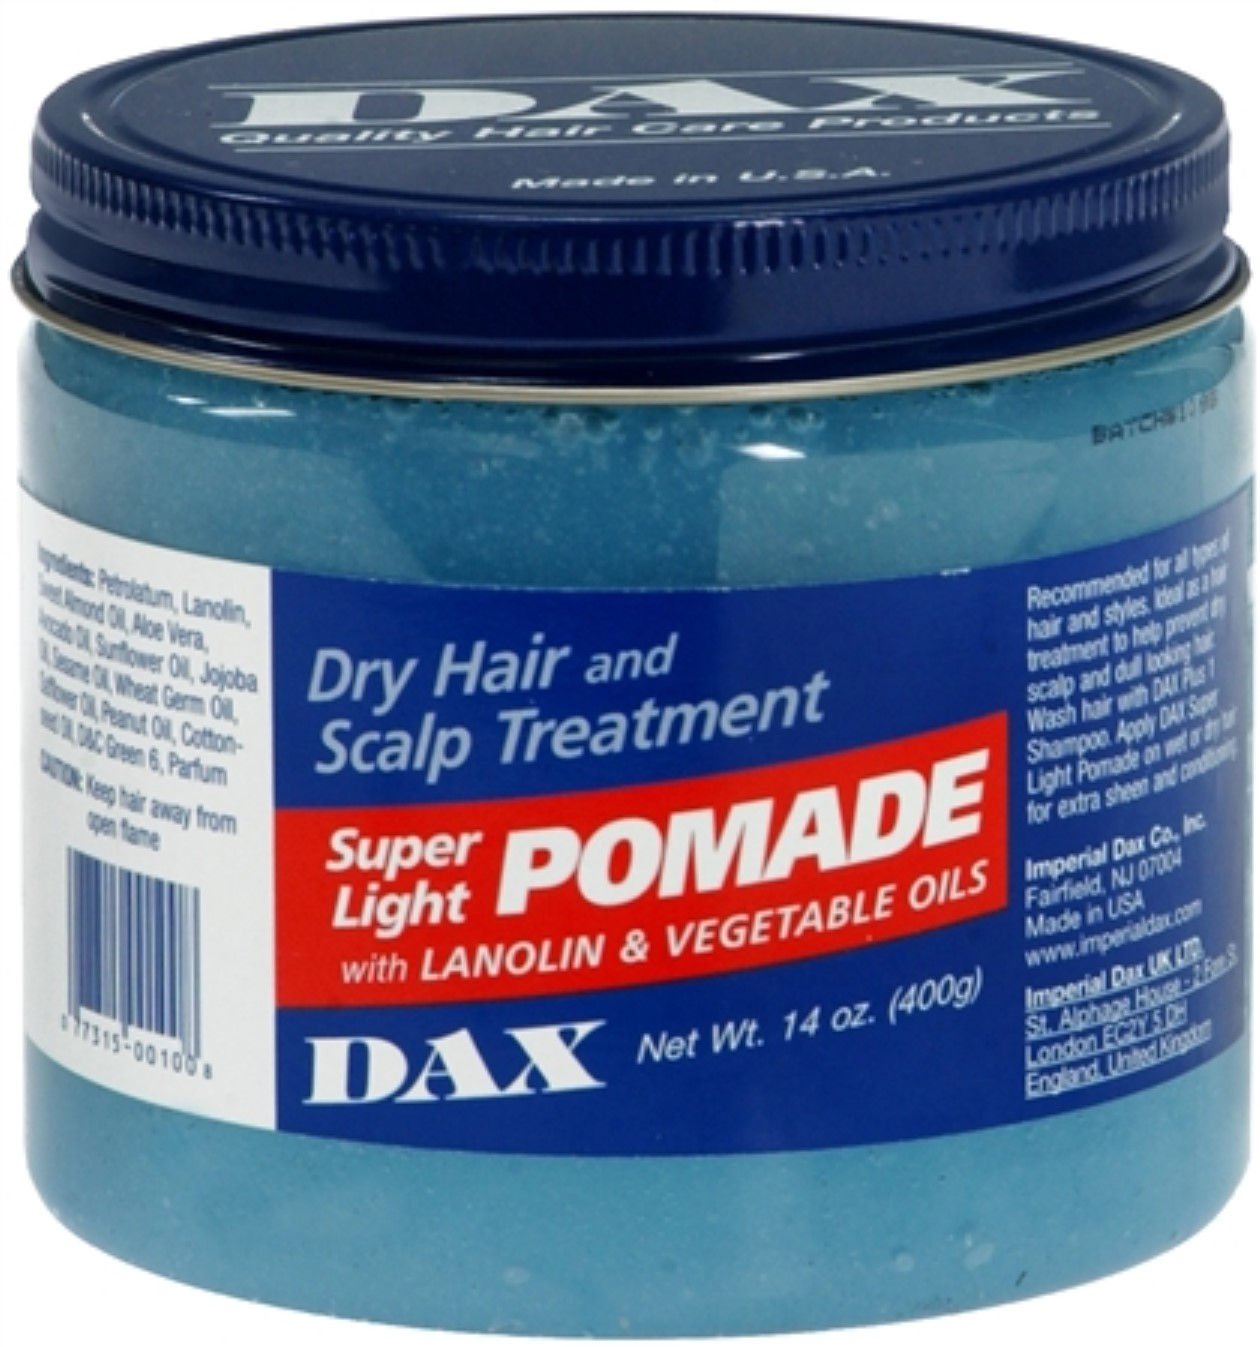 Dax Super Light Pomade For Dry Hair And Scalp Treatment - 14 Oz